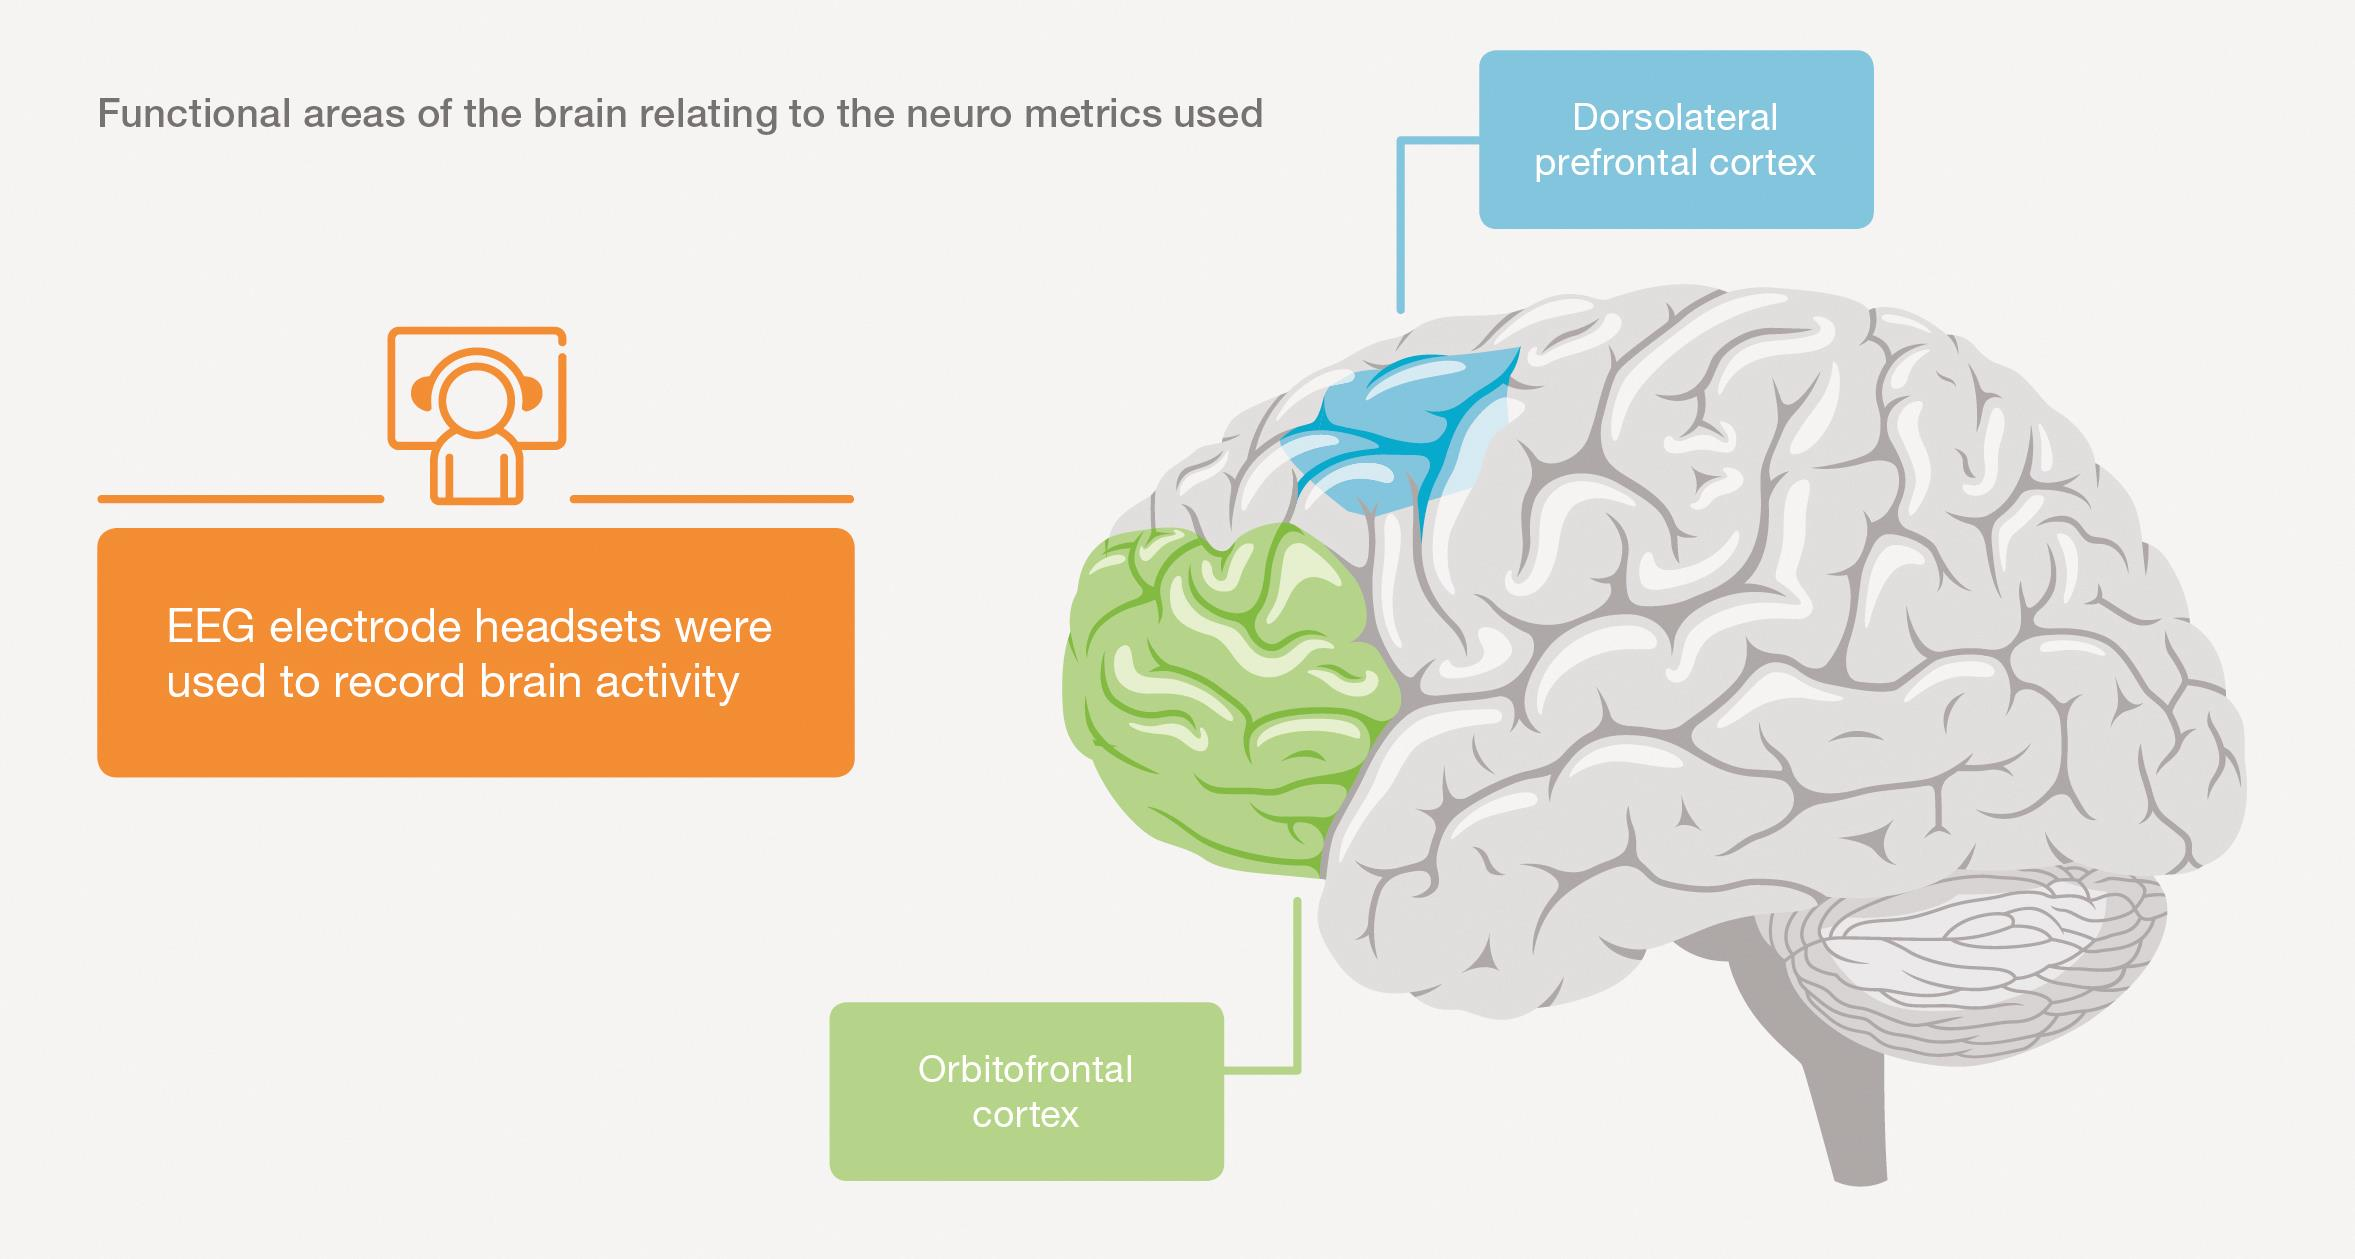 Graphic - Areas of the brain related to neurometrics